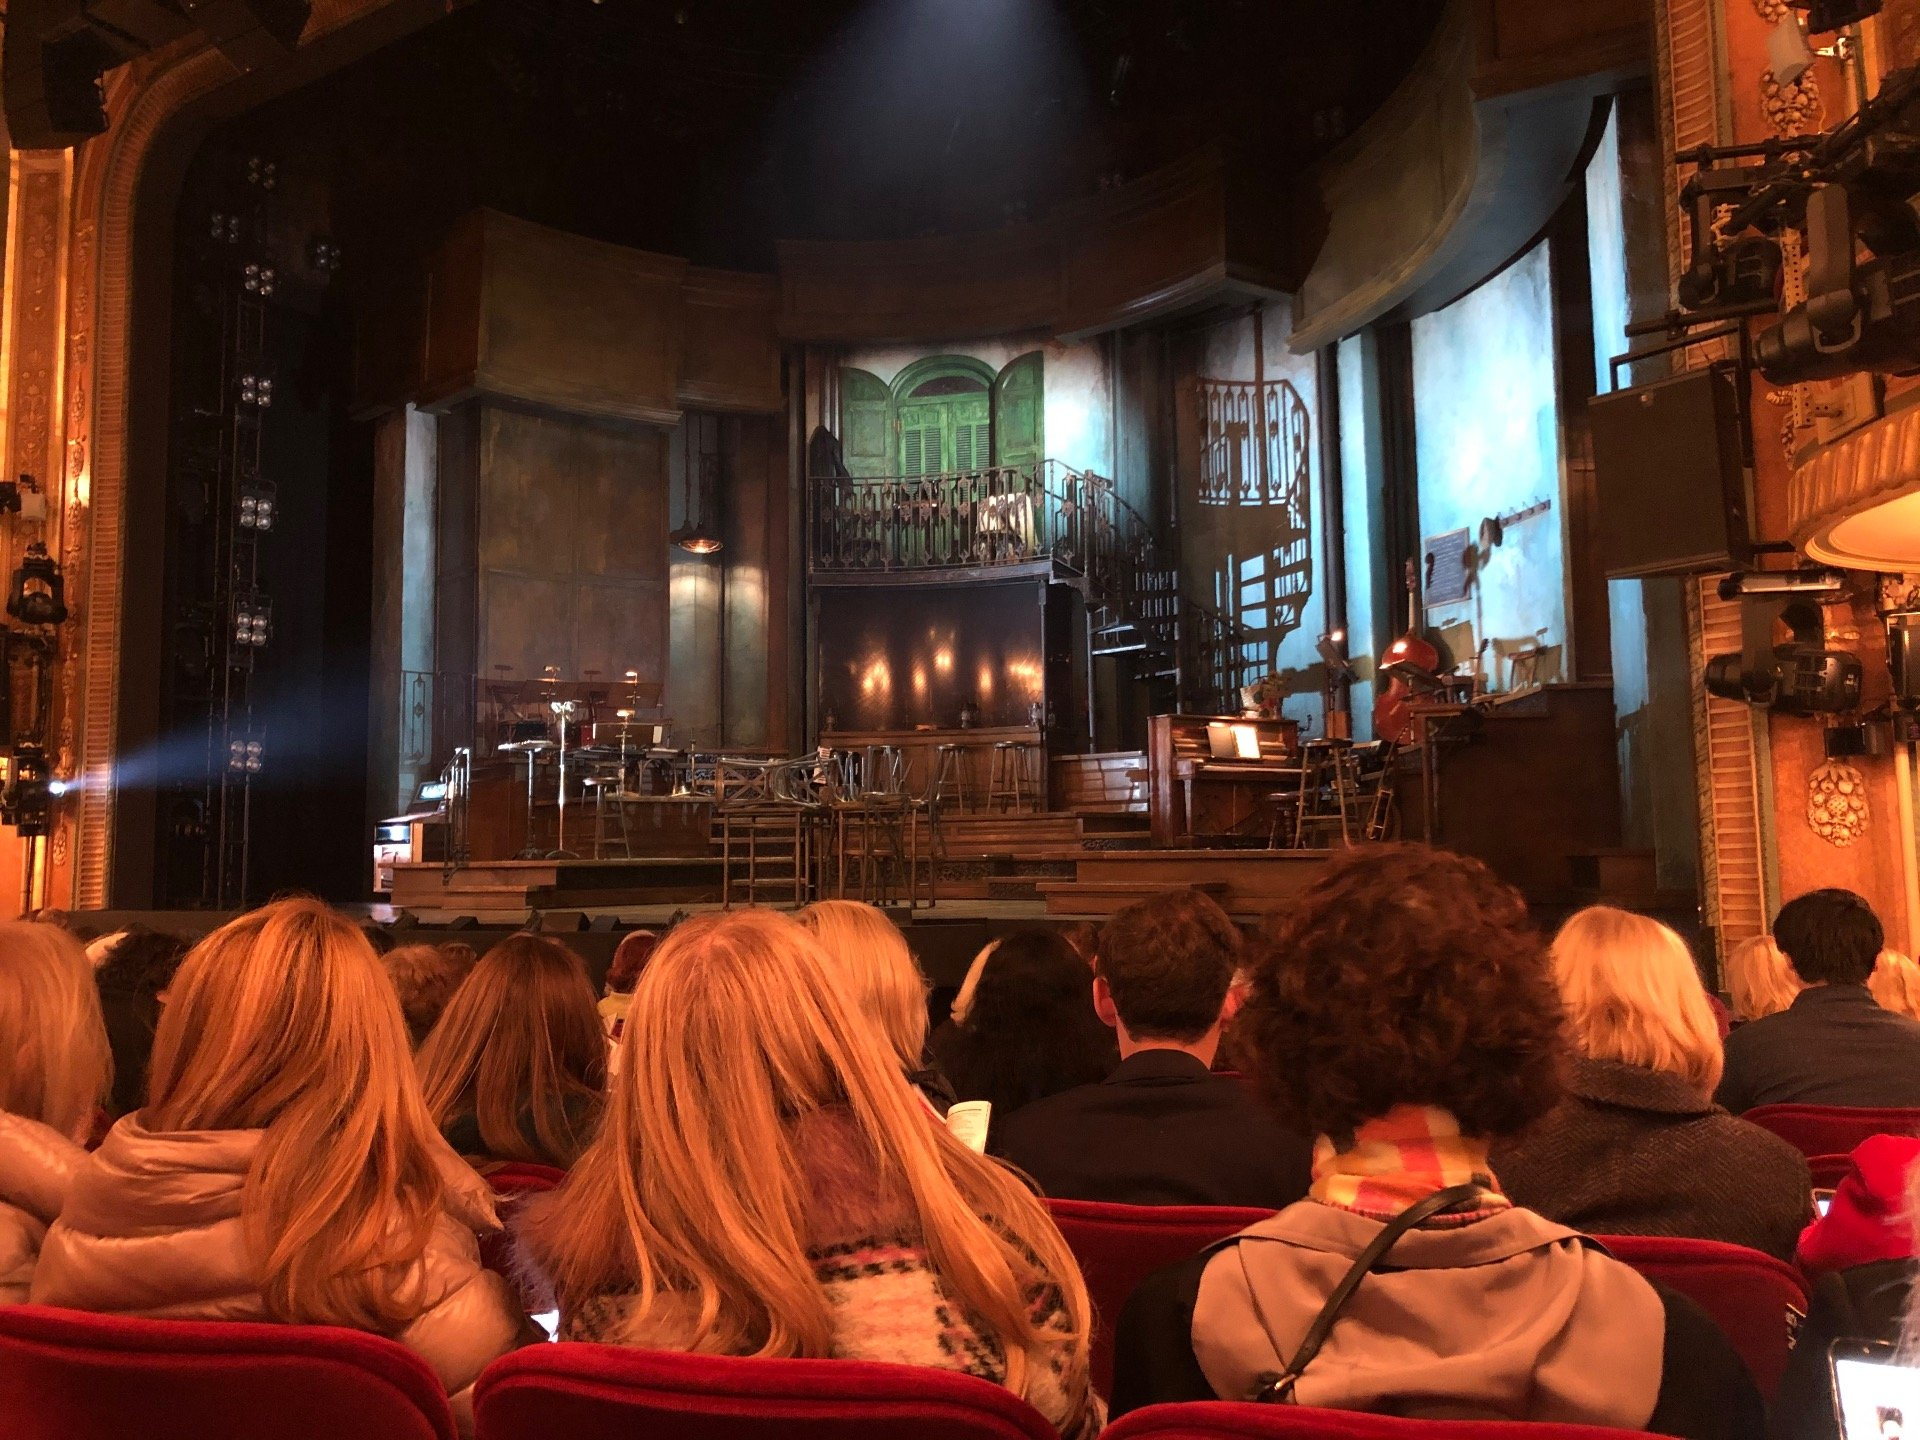 Walter Kerr Theatre Section Orchestra R Row L Seat 10